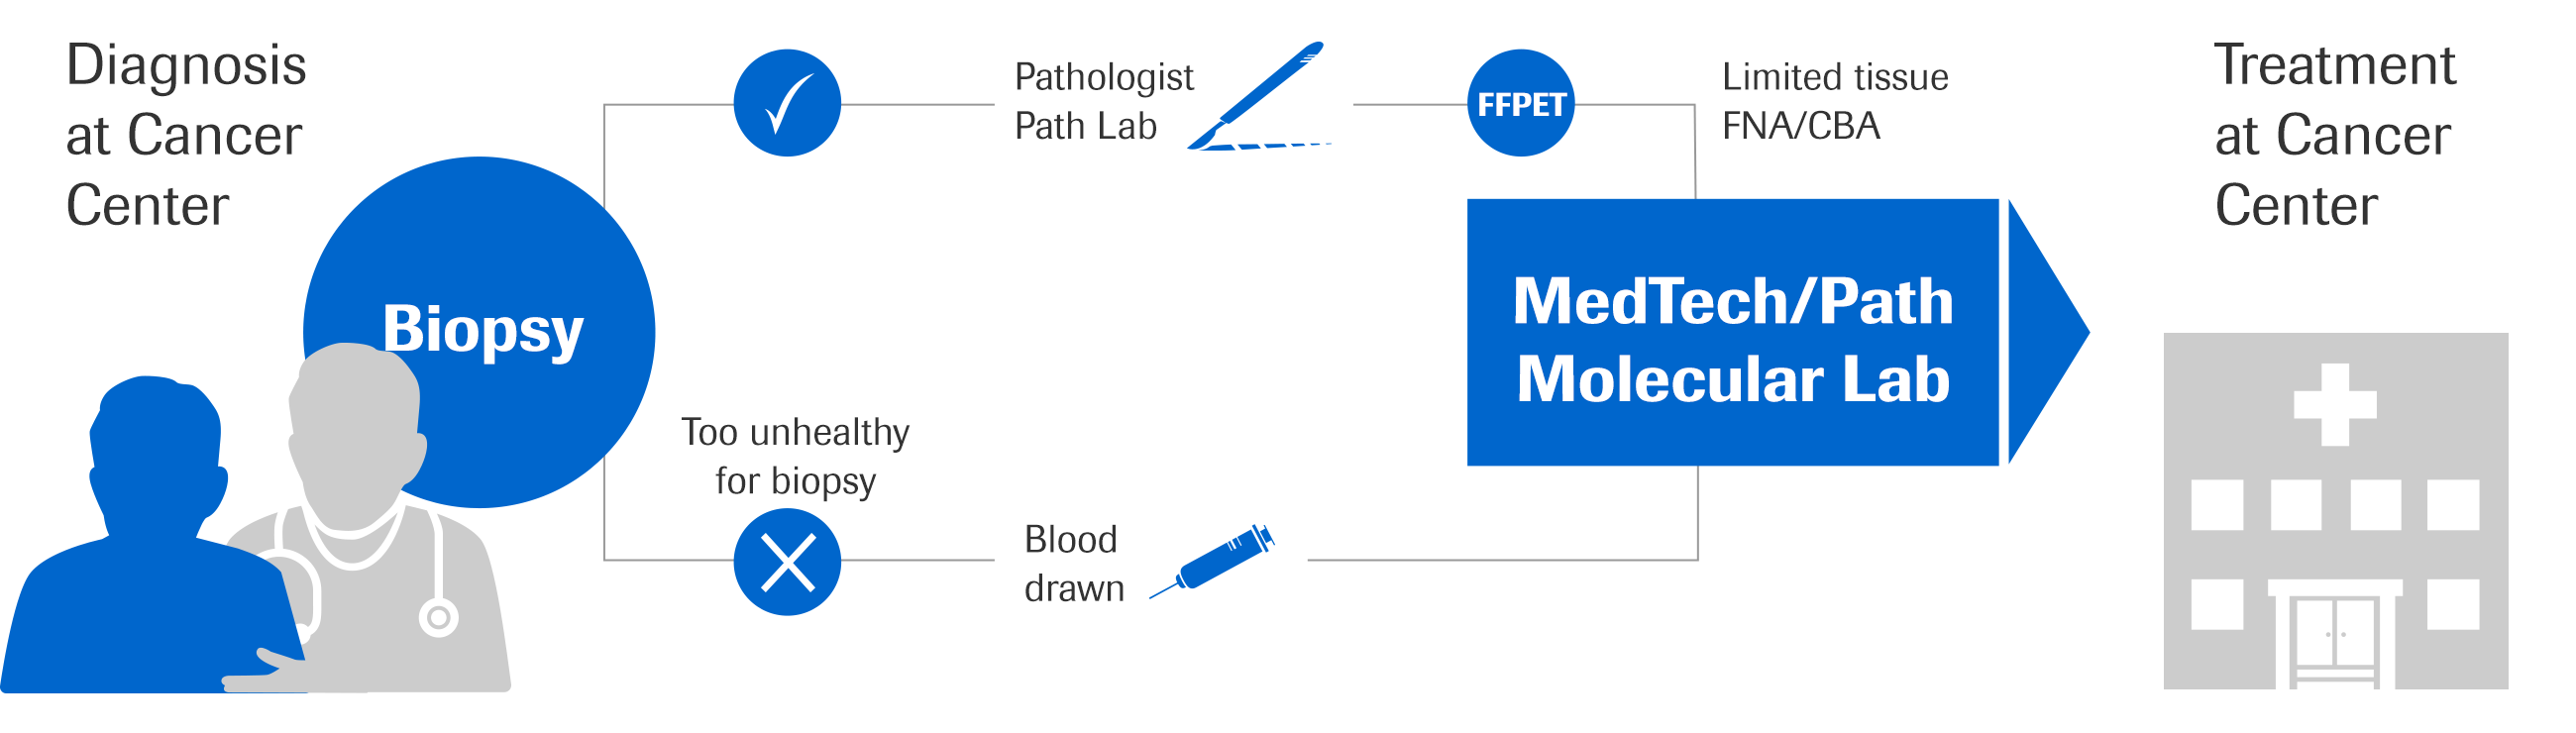 RMD_G&O_Pathologist Path Lab